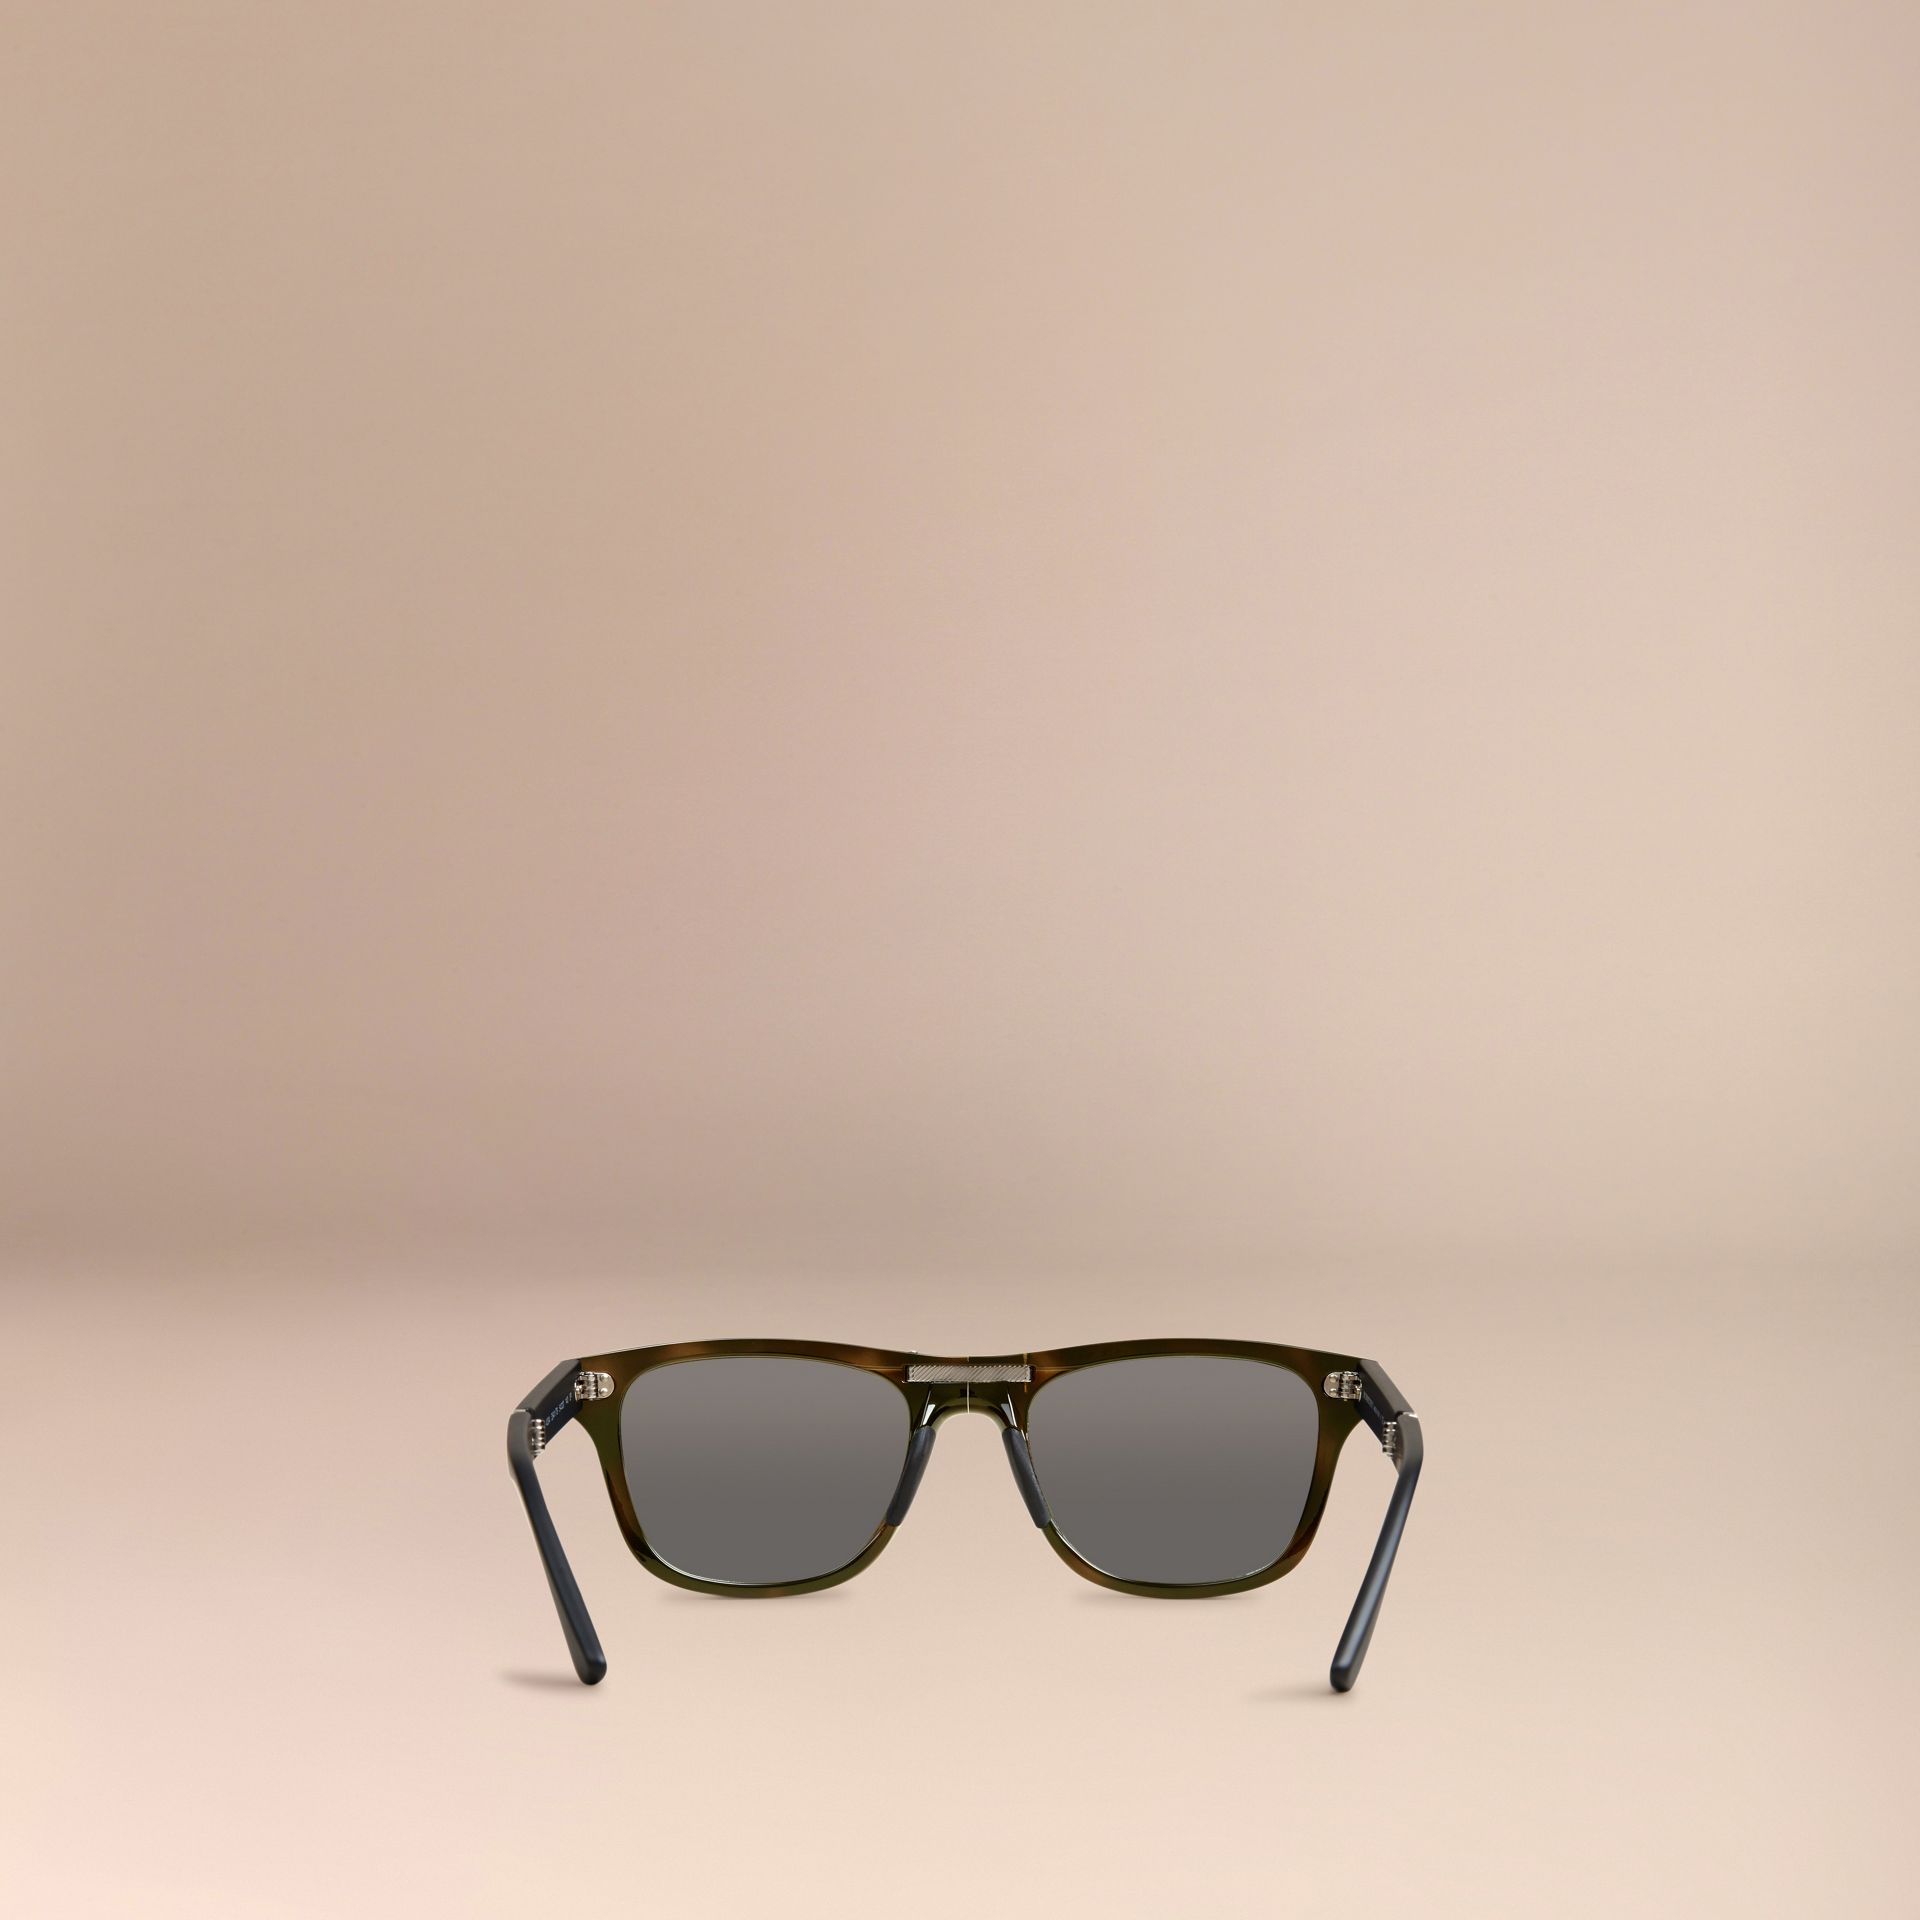 Folding Rectangular Frame Polarised Sunglasses in Grey - Men | Burberry Australia - gallery image 3